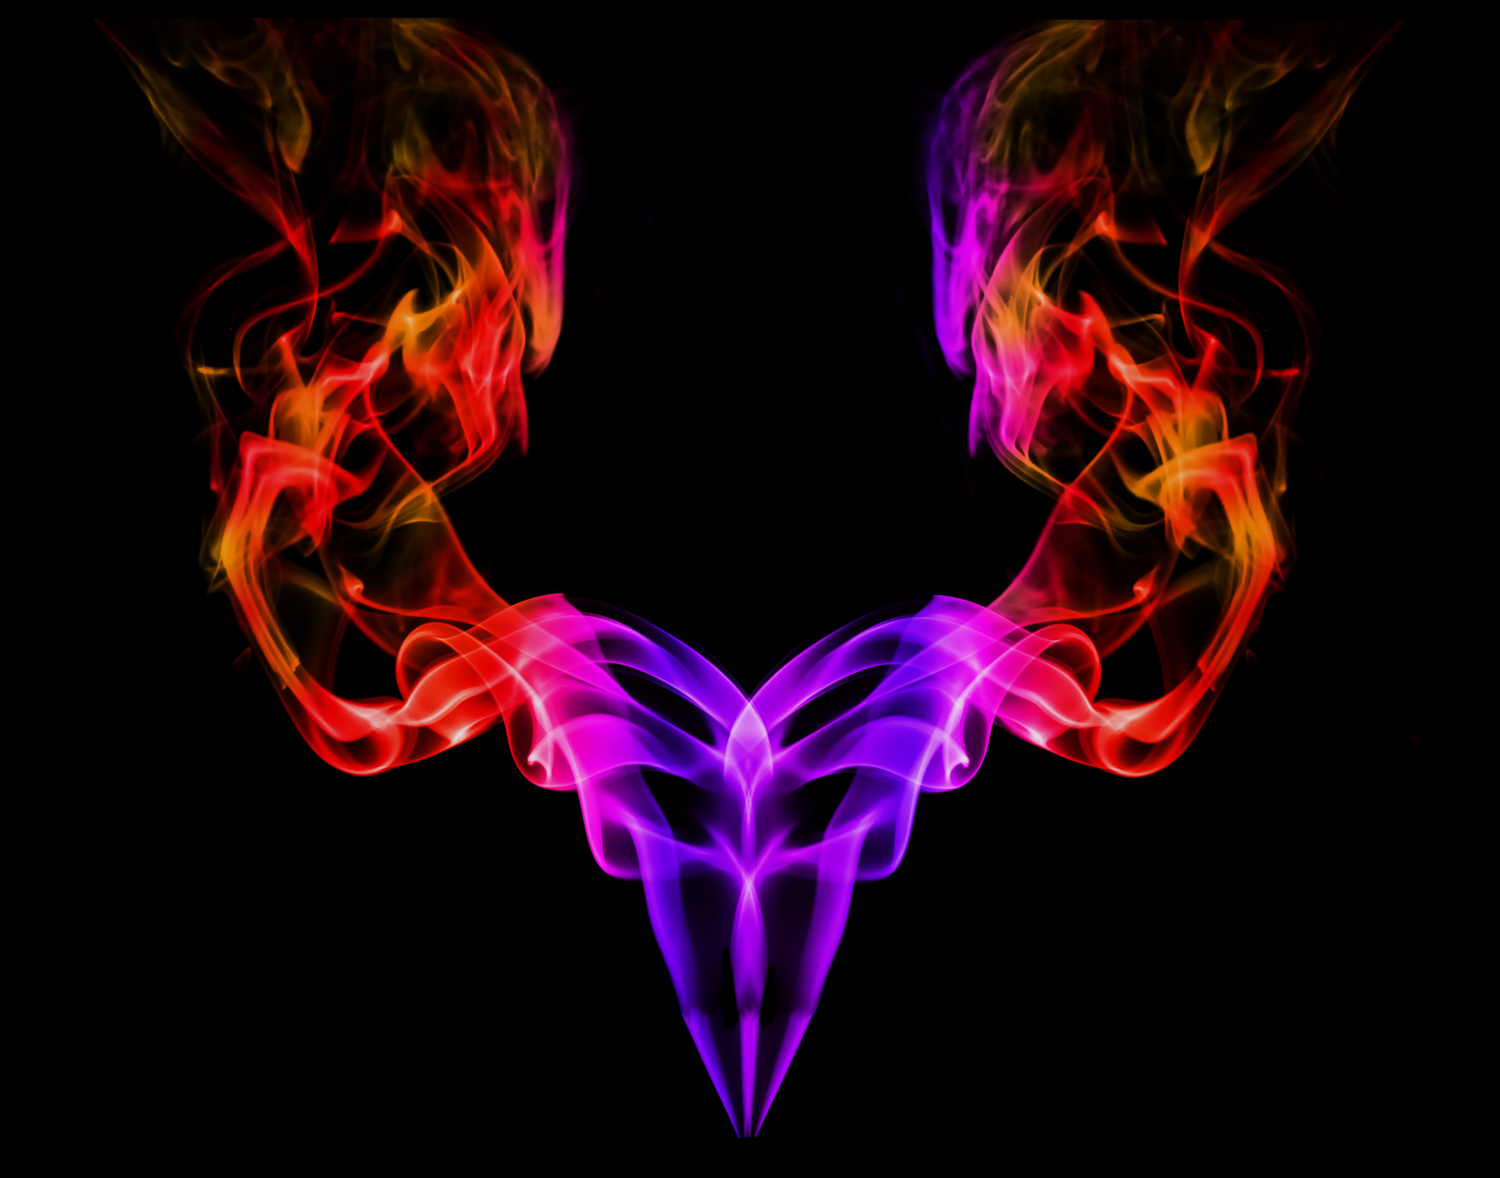 Abstract Smoke Photography - The Witch Doctor